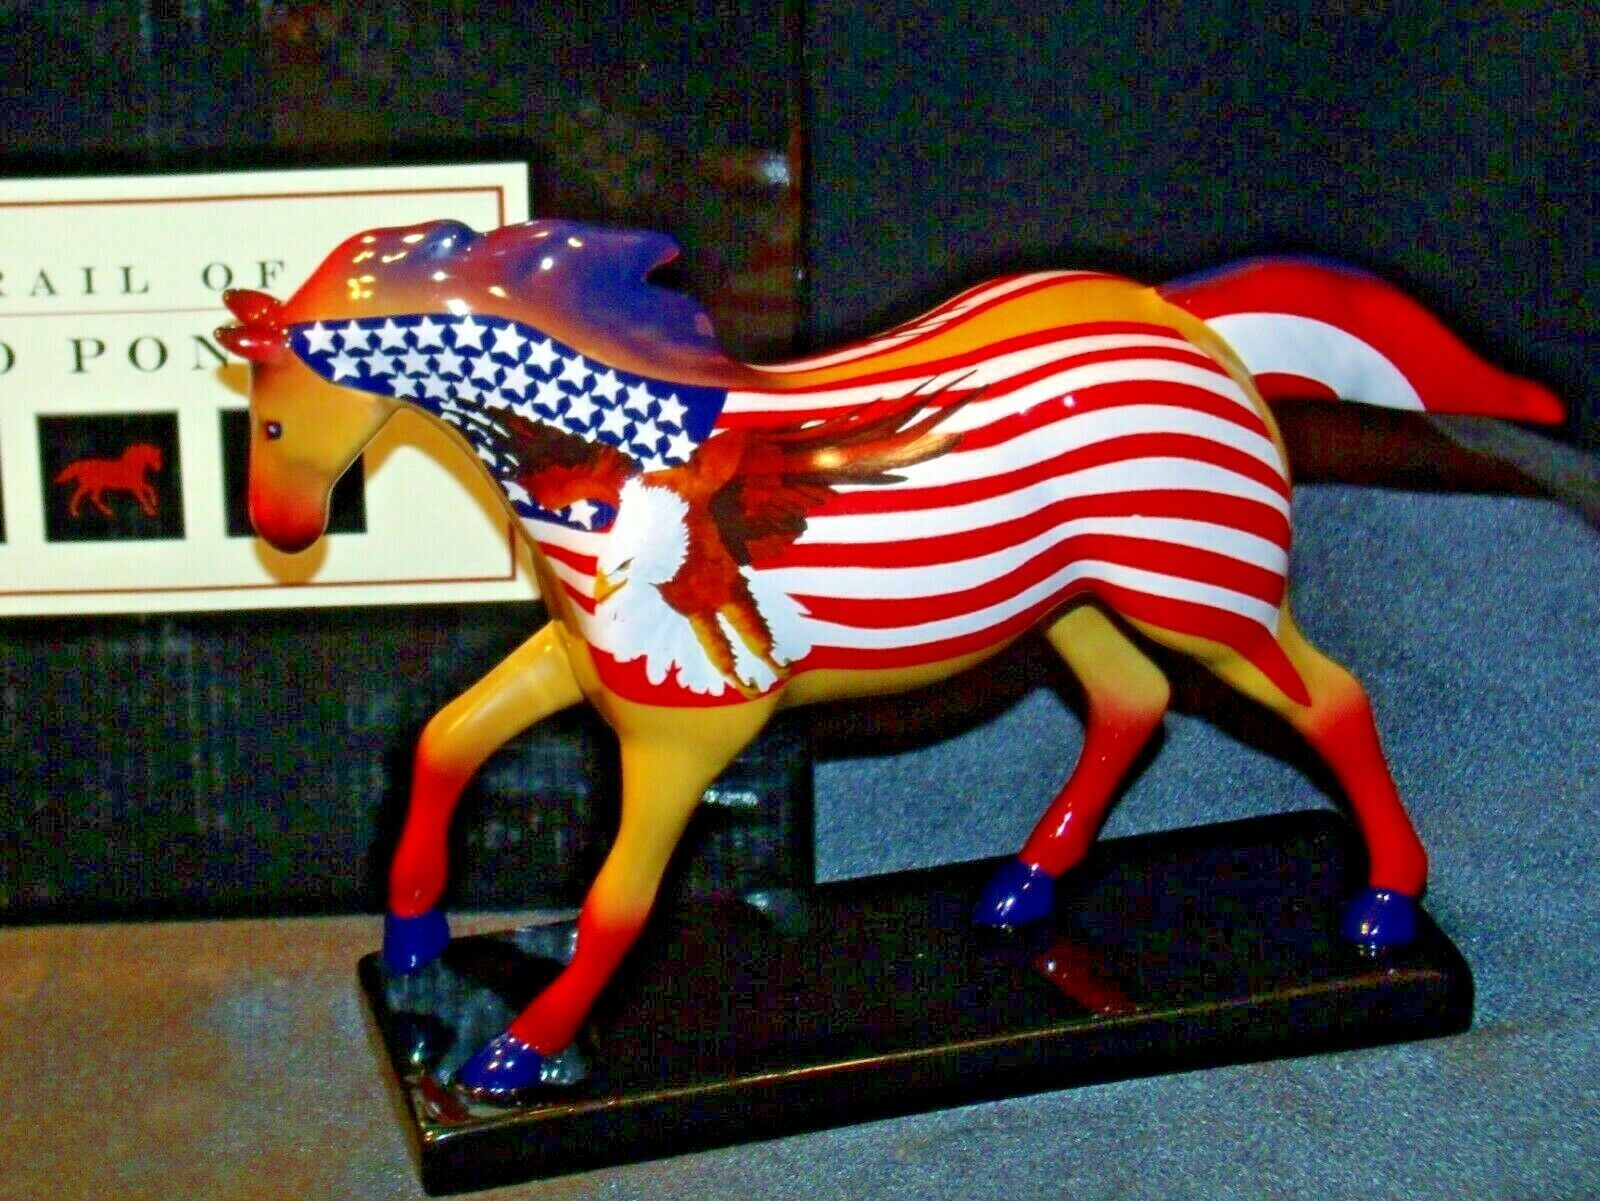 Ceramic Trail of the Painted Pony Give Me Wings #1471 Westland GiftwareAA-191998